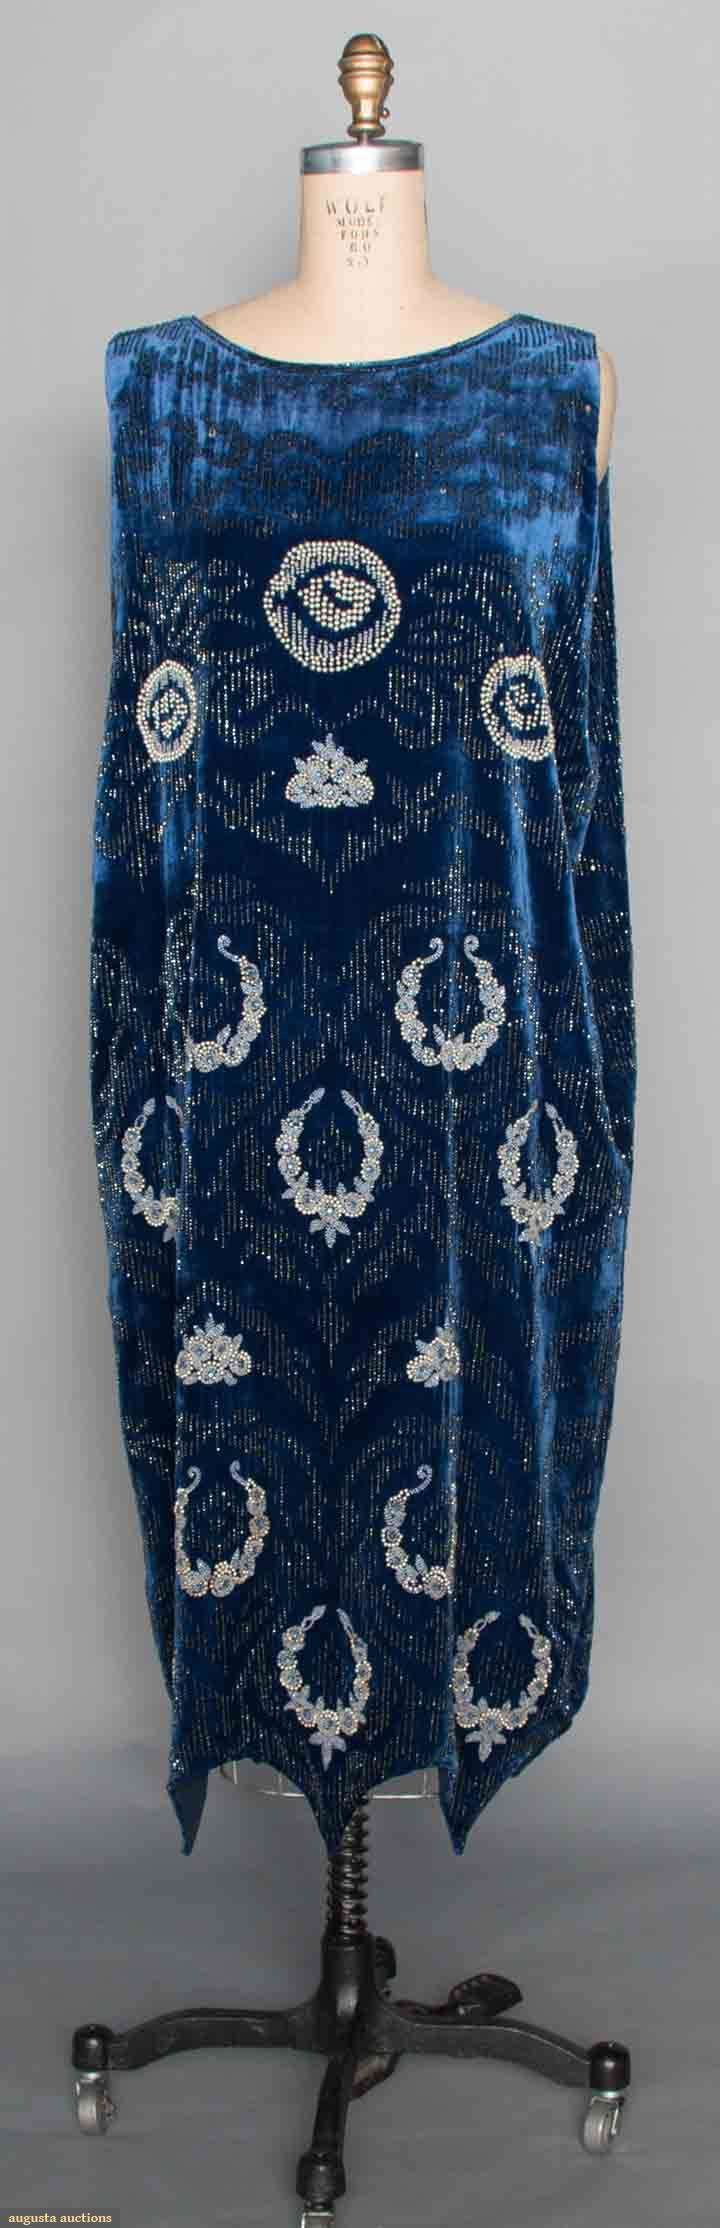 Beaded Blue Velvet Gown, C. 1920. For upcoming vintage and antique clothing auction. #1920s #vintagefashion